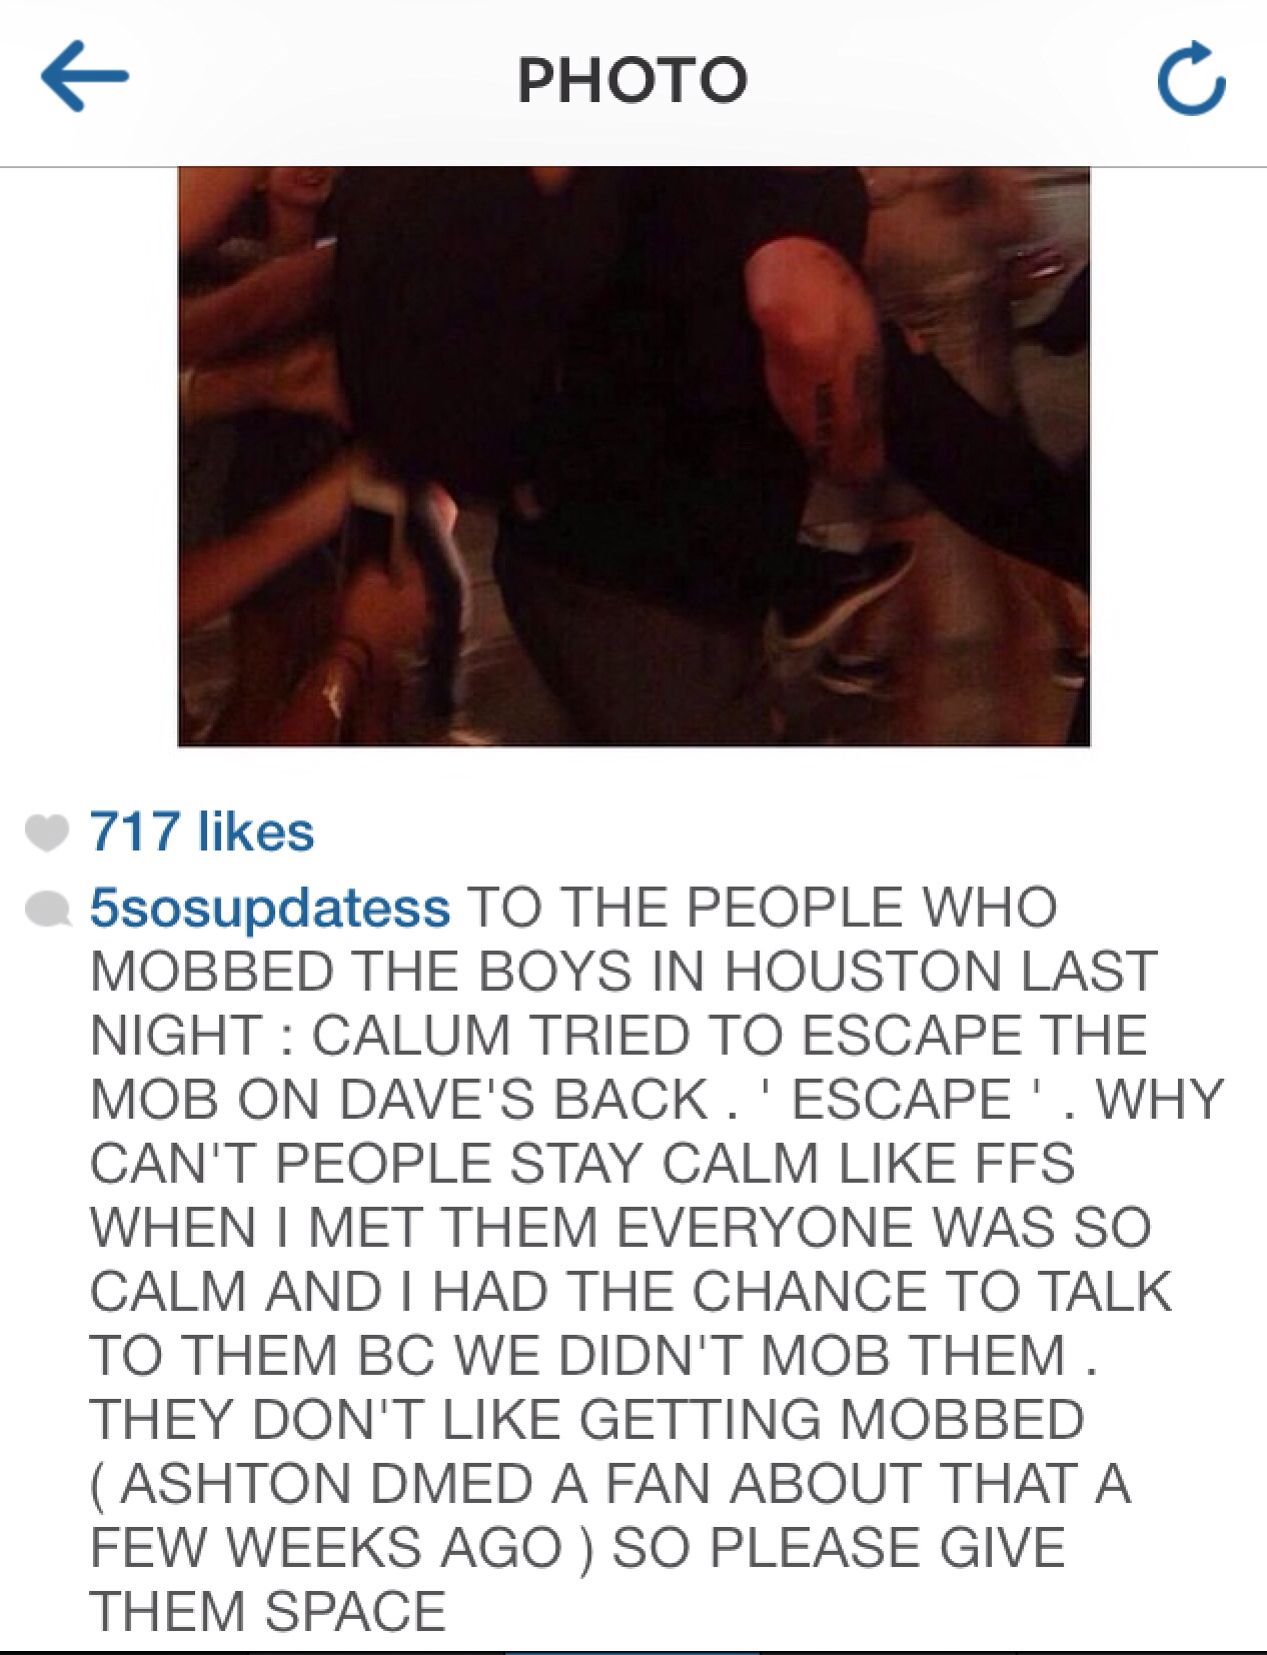 My rant lol <<< I completely agree with it. The 5sosfam used to be so calm and we all got too meet them, and it's getting crazier and it sucks